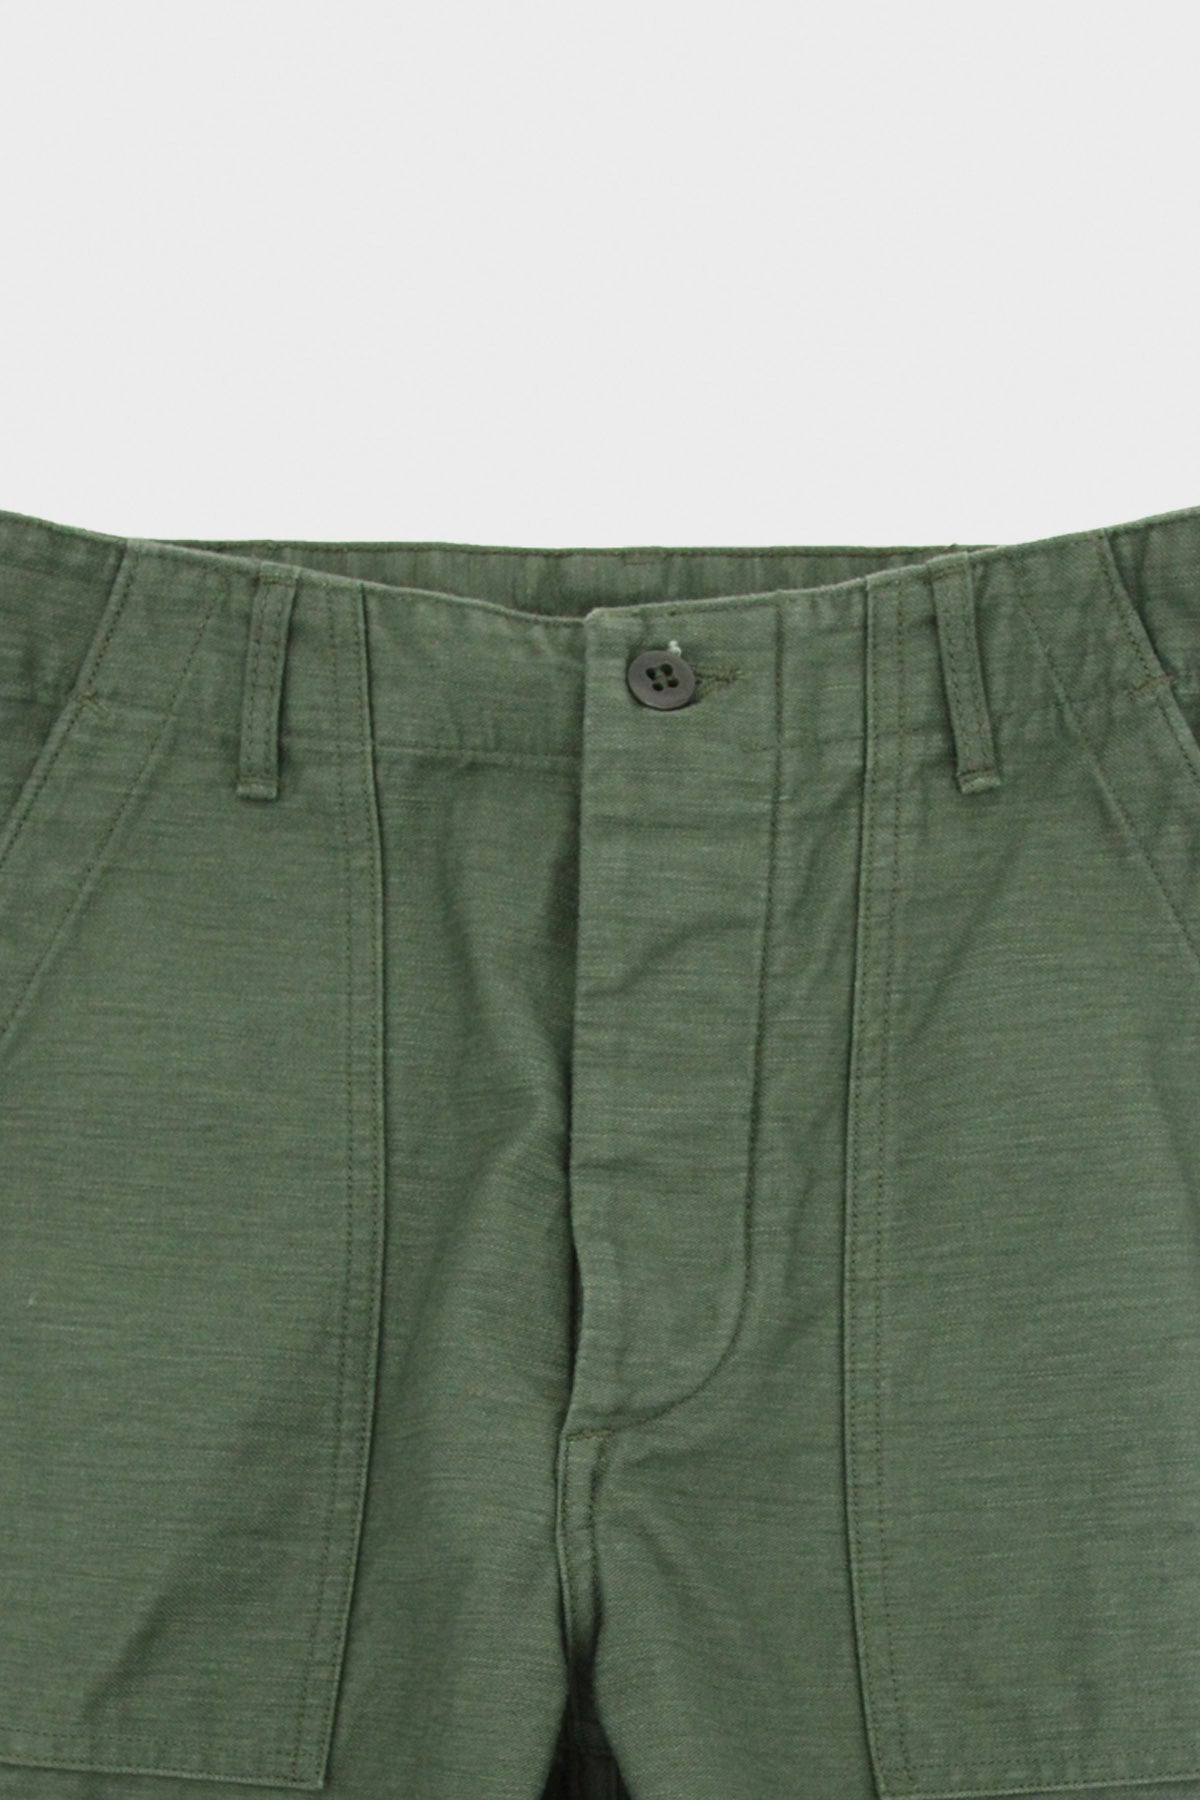 orSlow - Standard Fit Fatigue Pants - Olive Reverse Sateen - Canoe Club